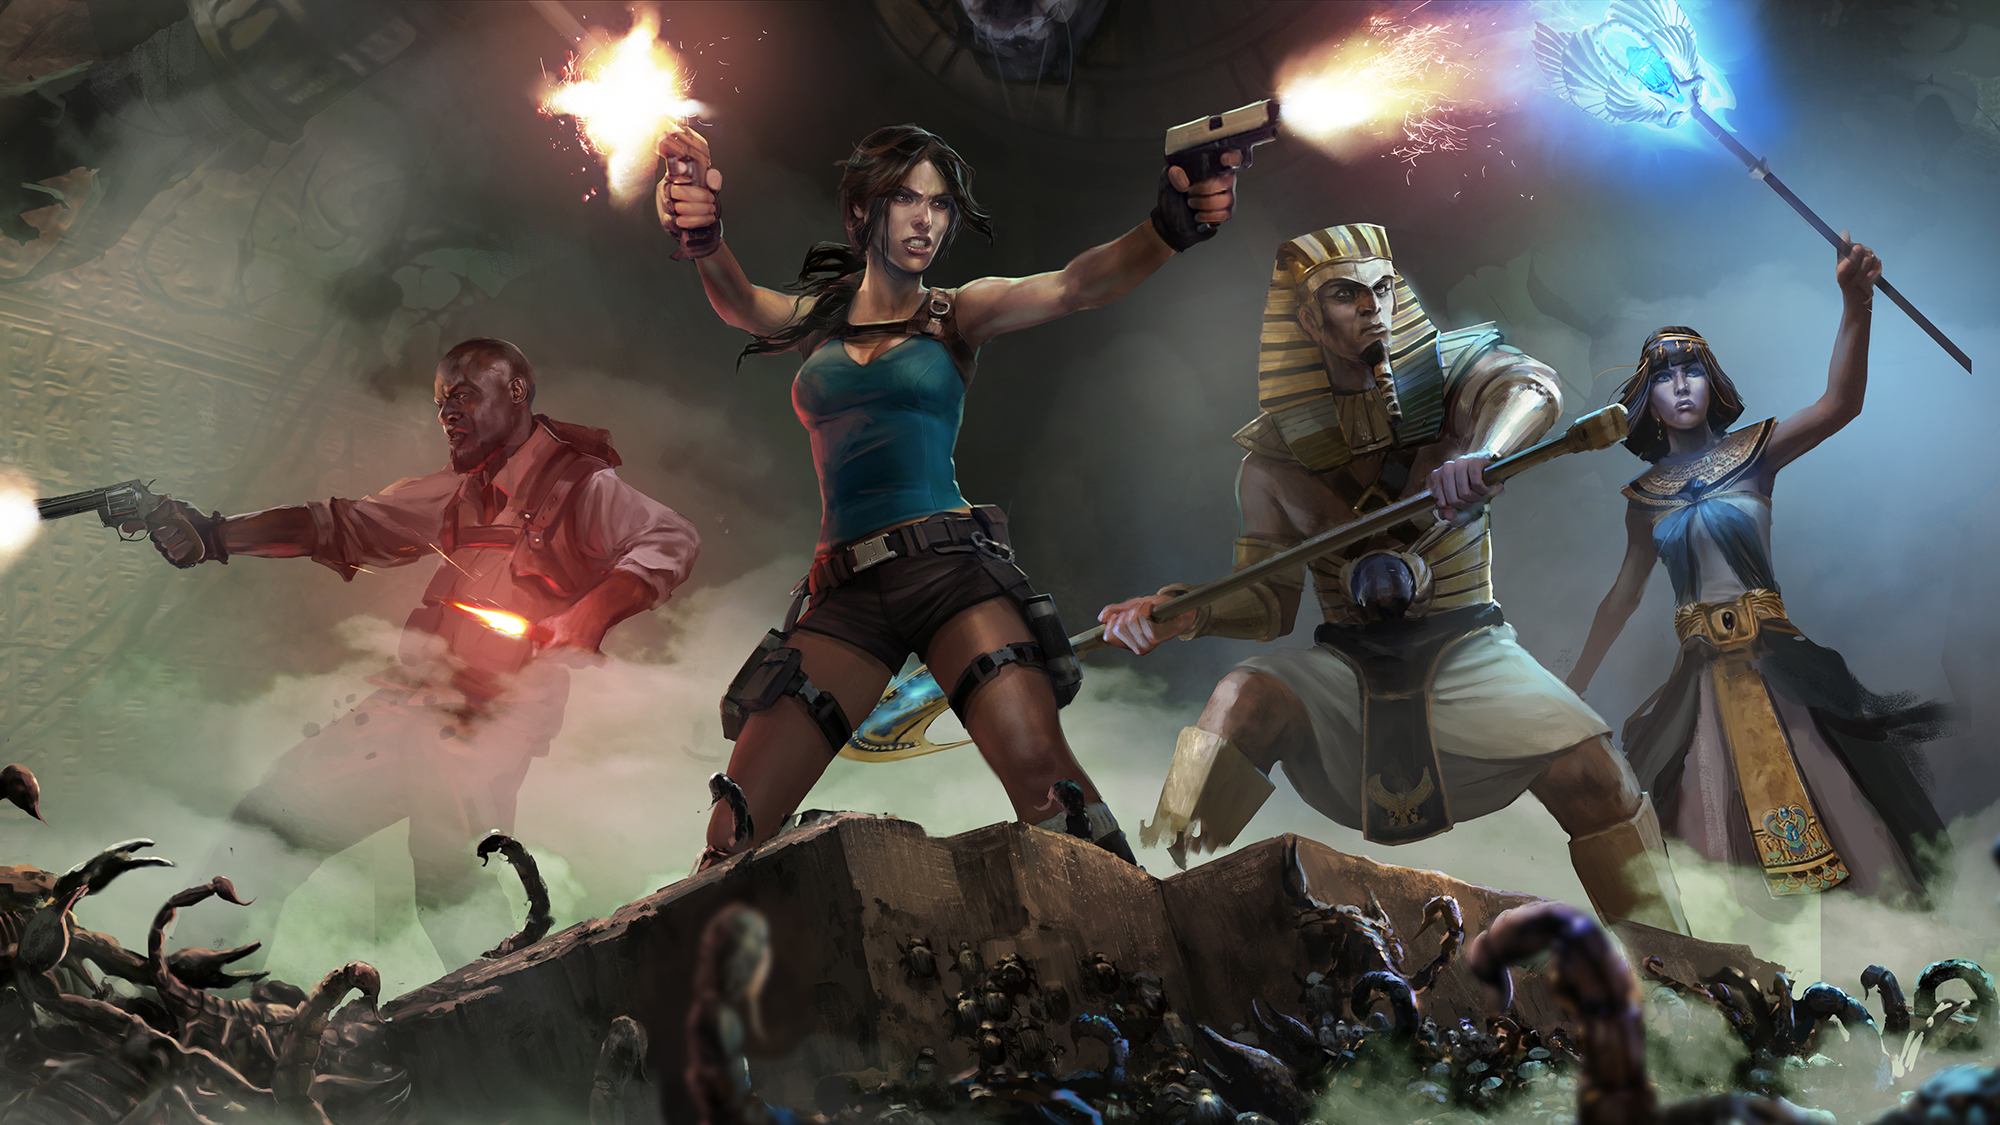 Lara Croft and the Temple of Osiris, reviewed!